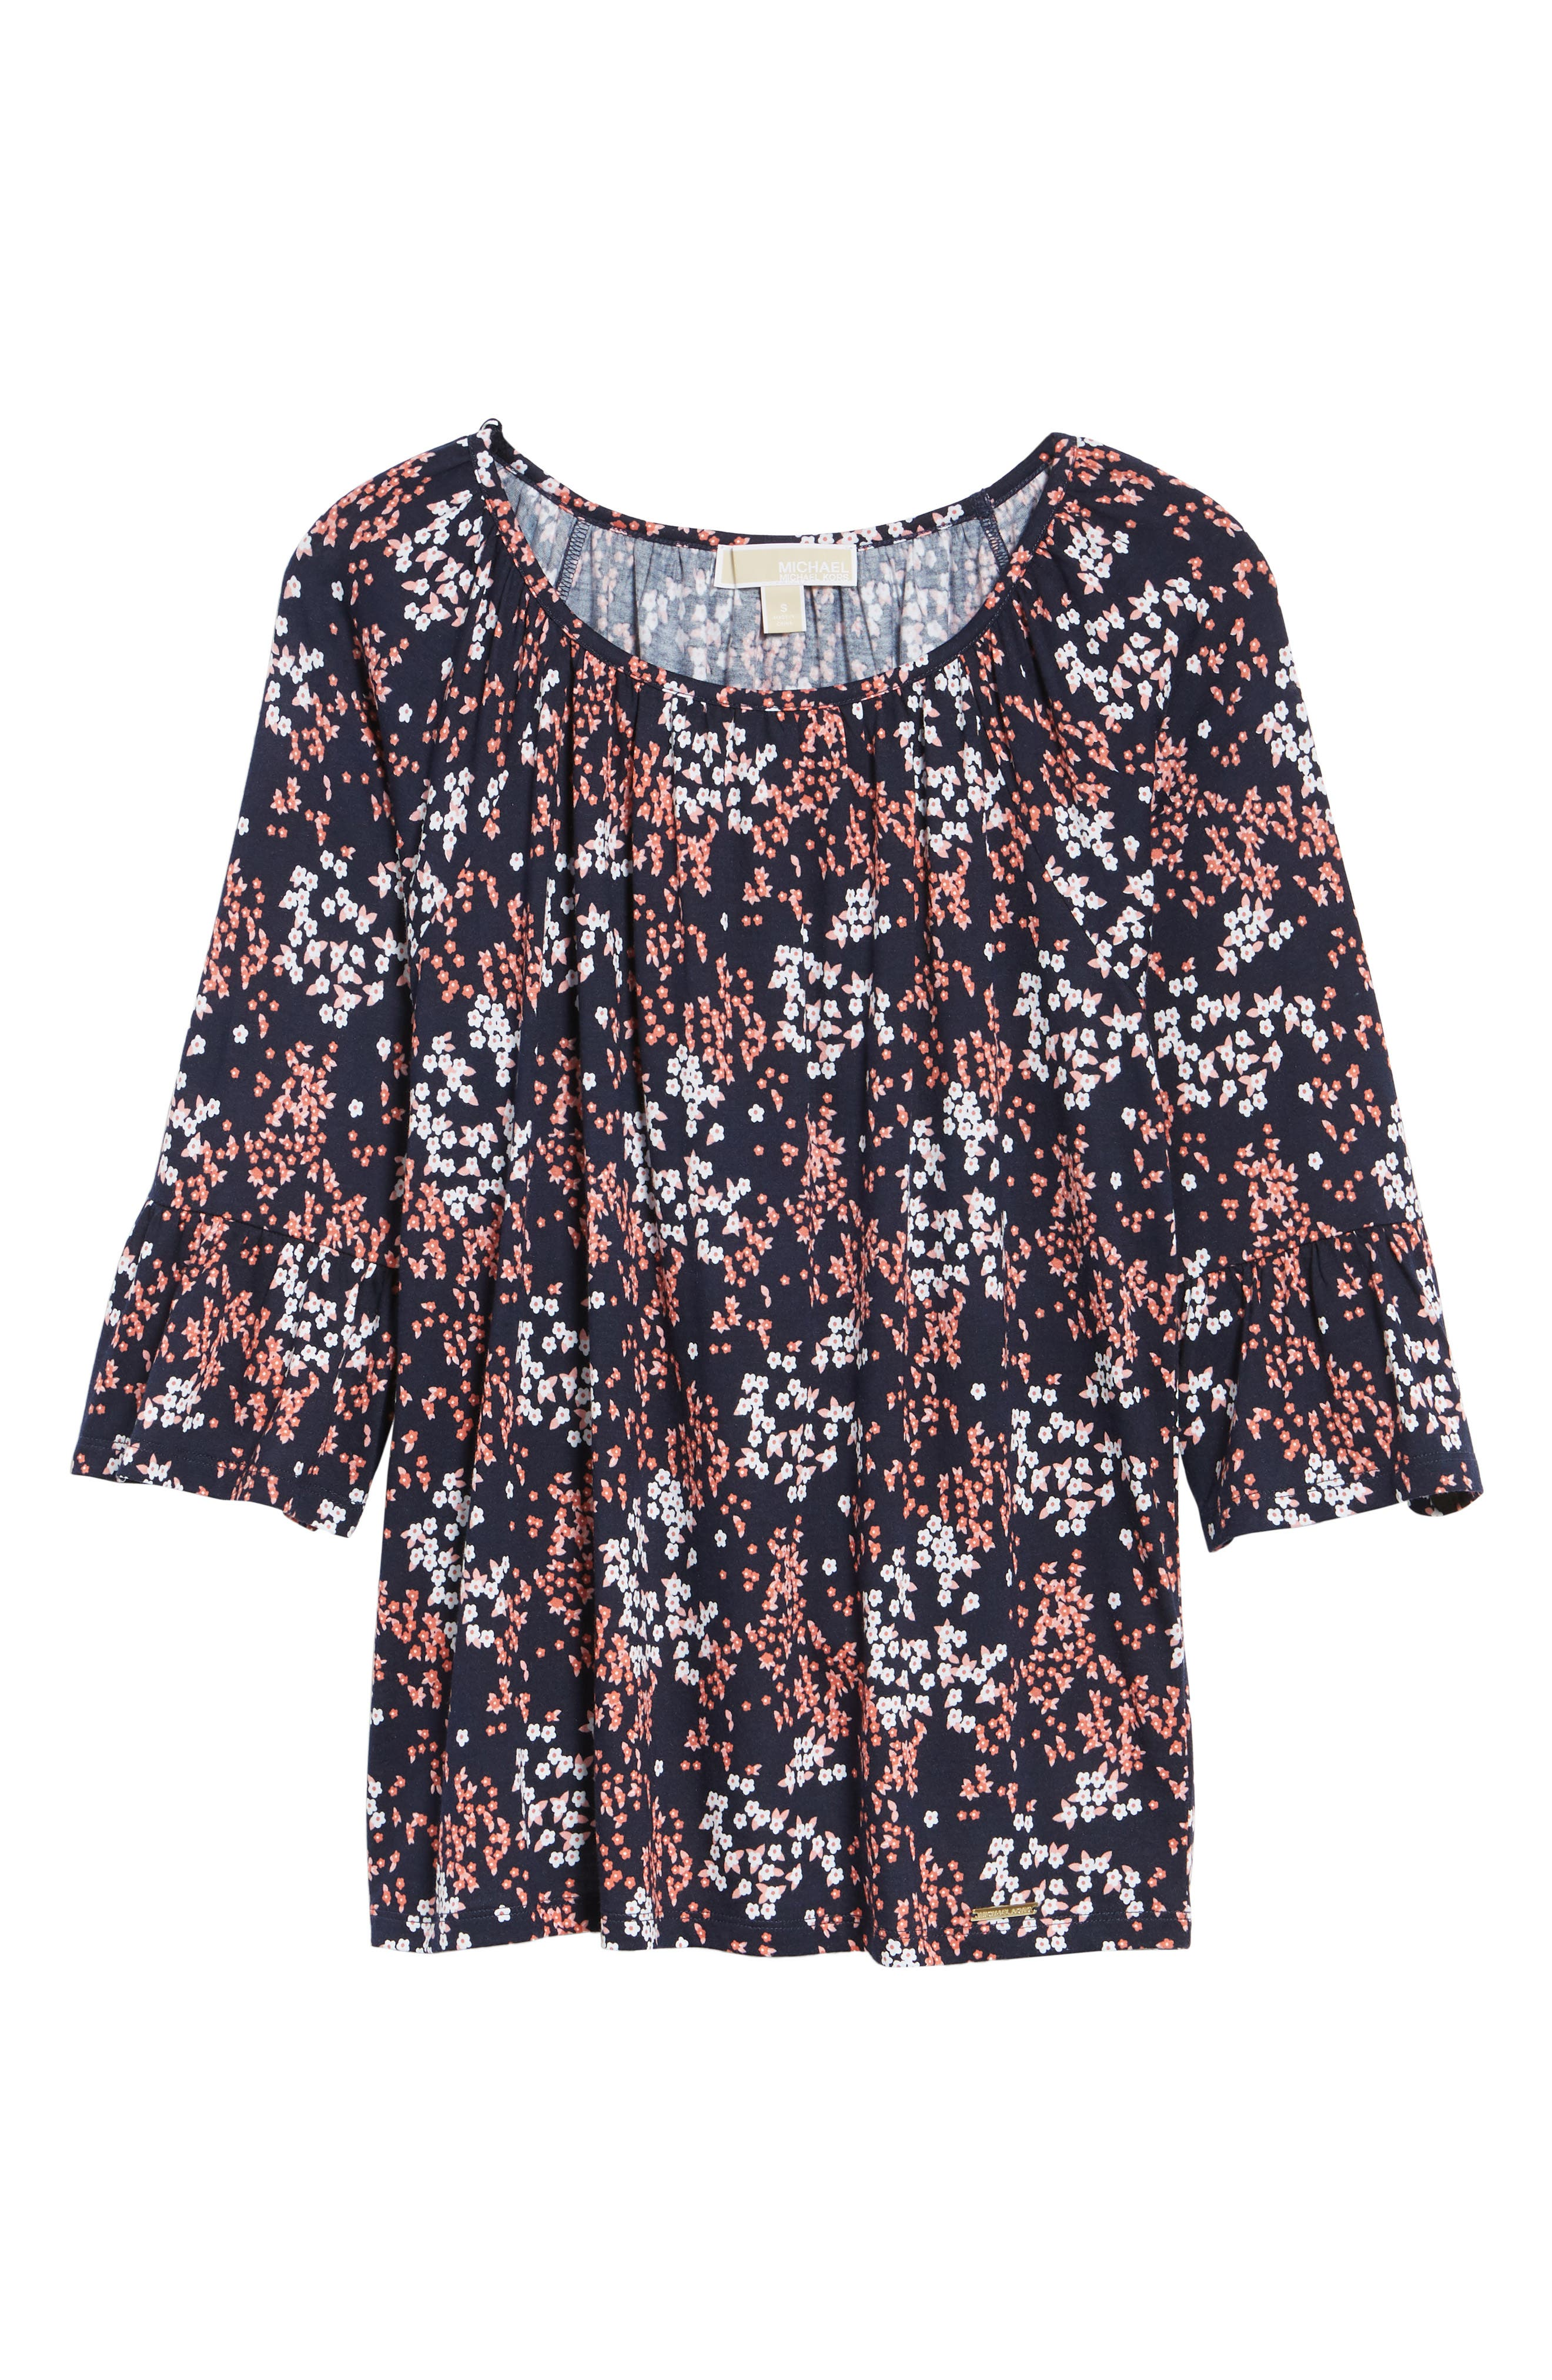 Scattered Blooms Print Peasant Top,                             Alternate thumbnail 7, color,                             True Navy/ Bright Blush